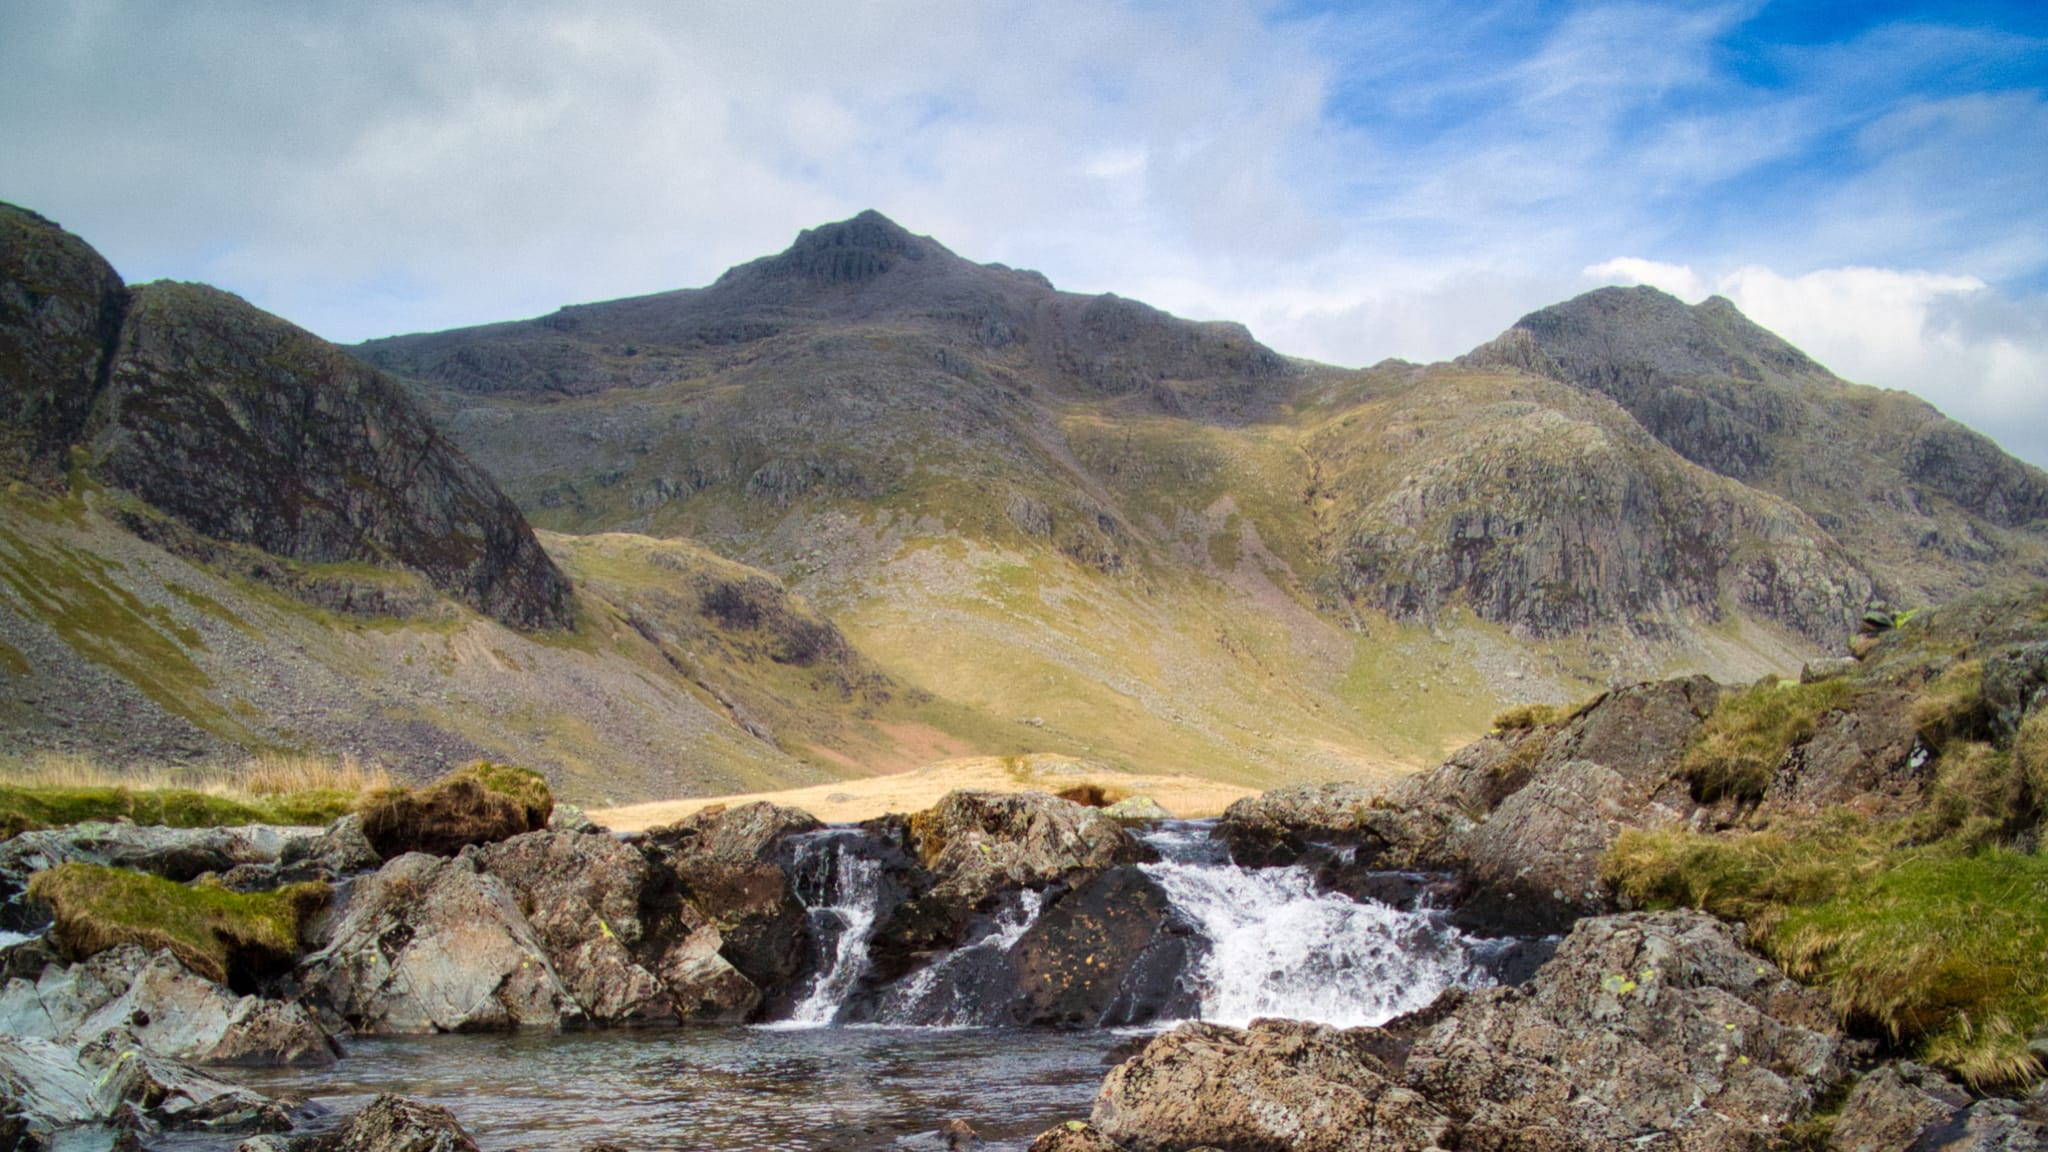 A view of Scafell Pike and its nearby fells from the Great Moss hanging valley above Eskdale